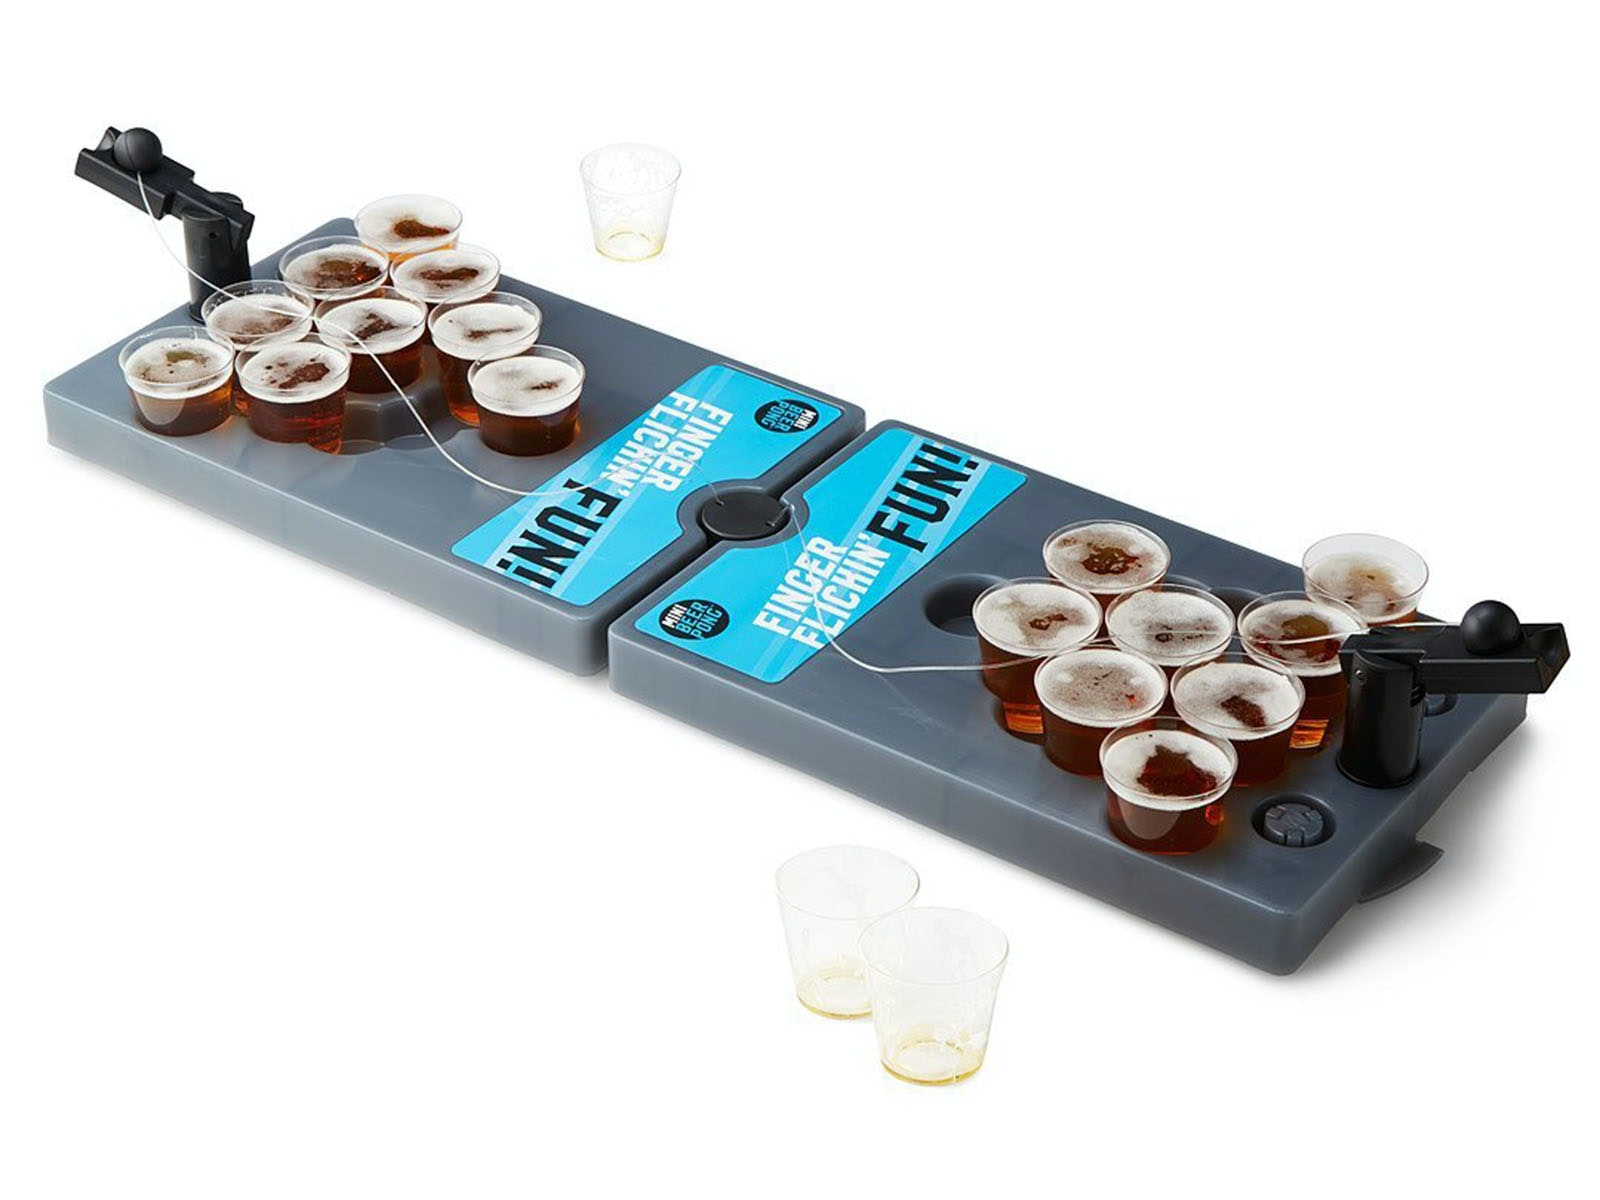 This tiny-yet-portable beer pong set for when you only want a couple sips